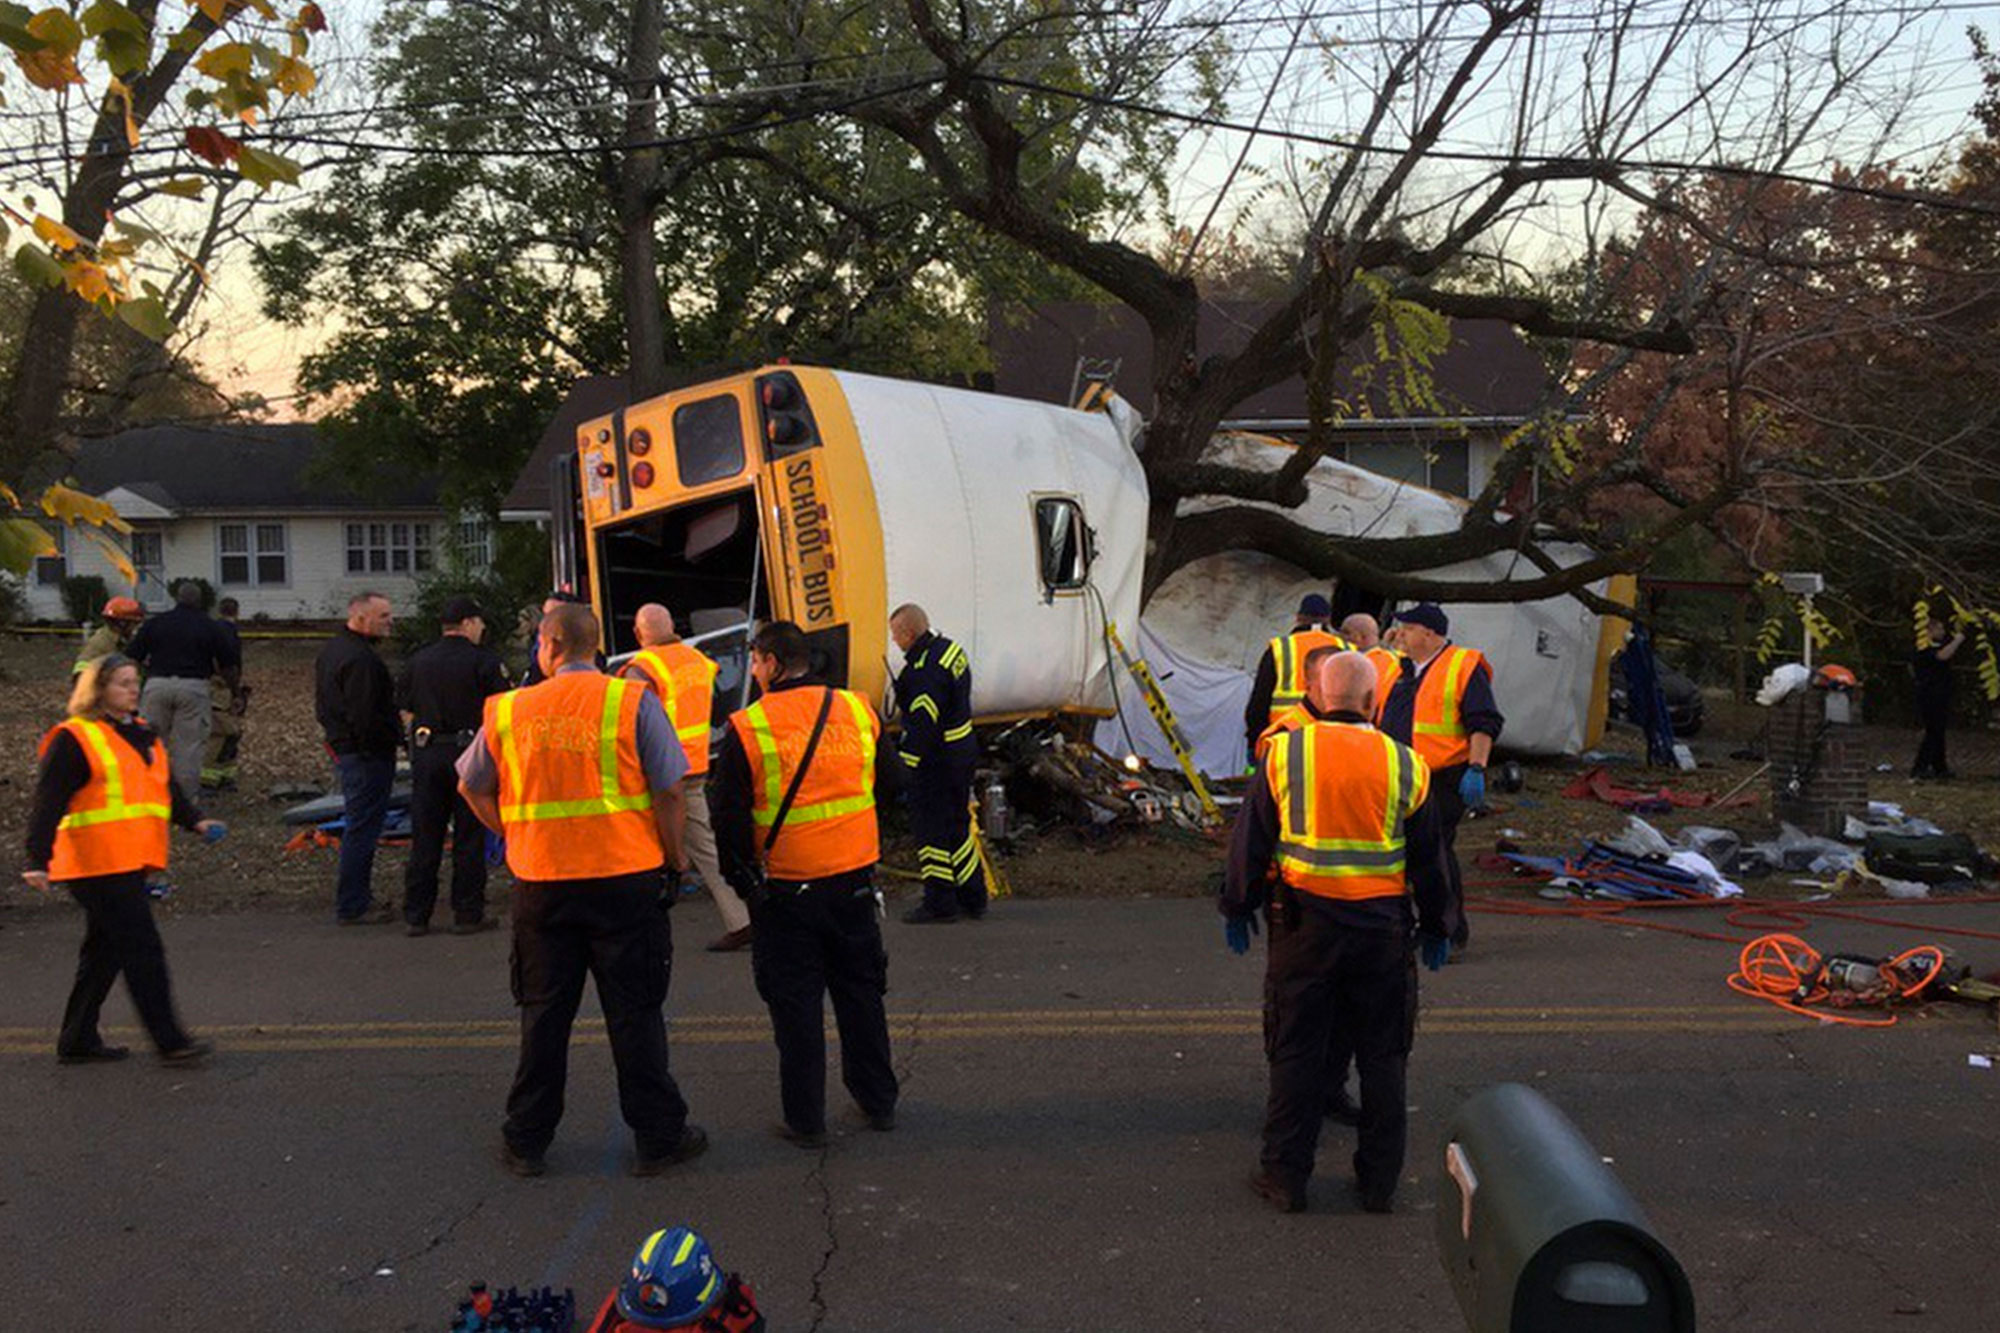 chattanooga-bus-crash-2000